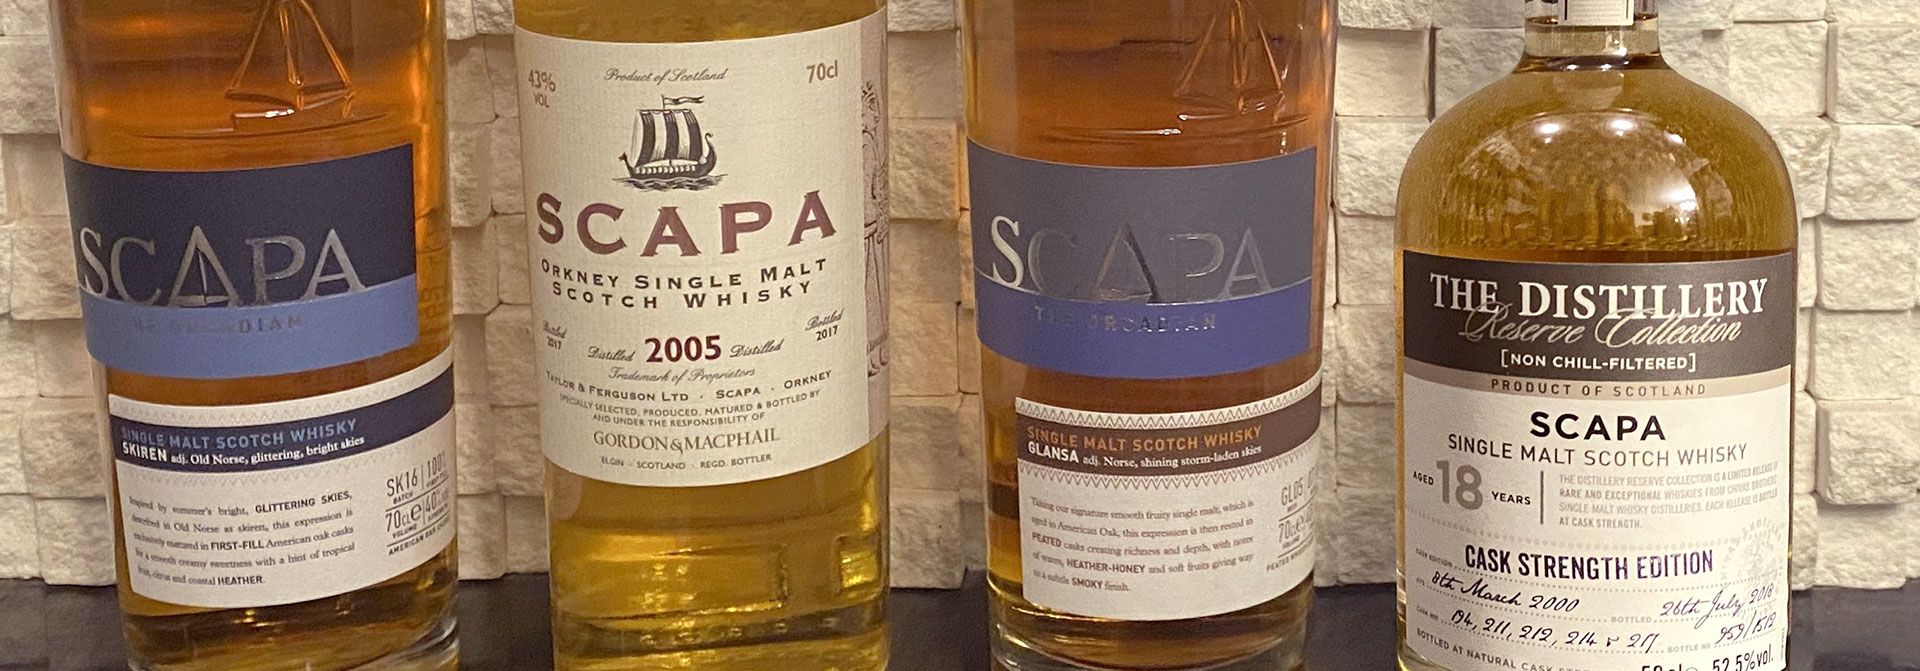 The Tasters Club Tasting Day 42 Scapa whisky tasting